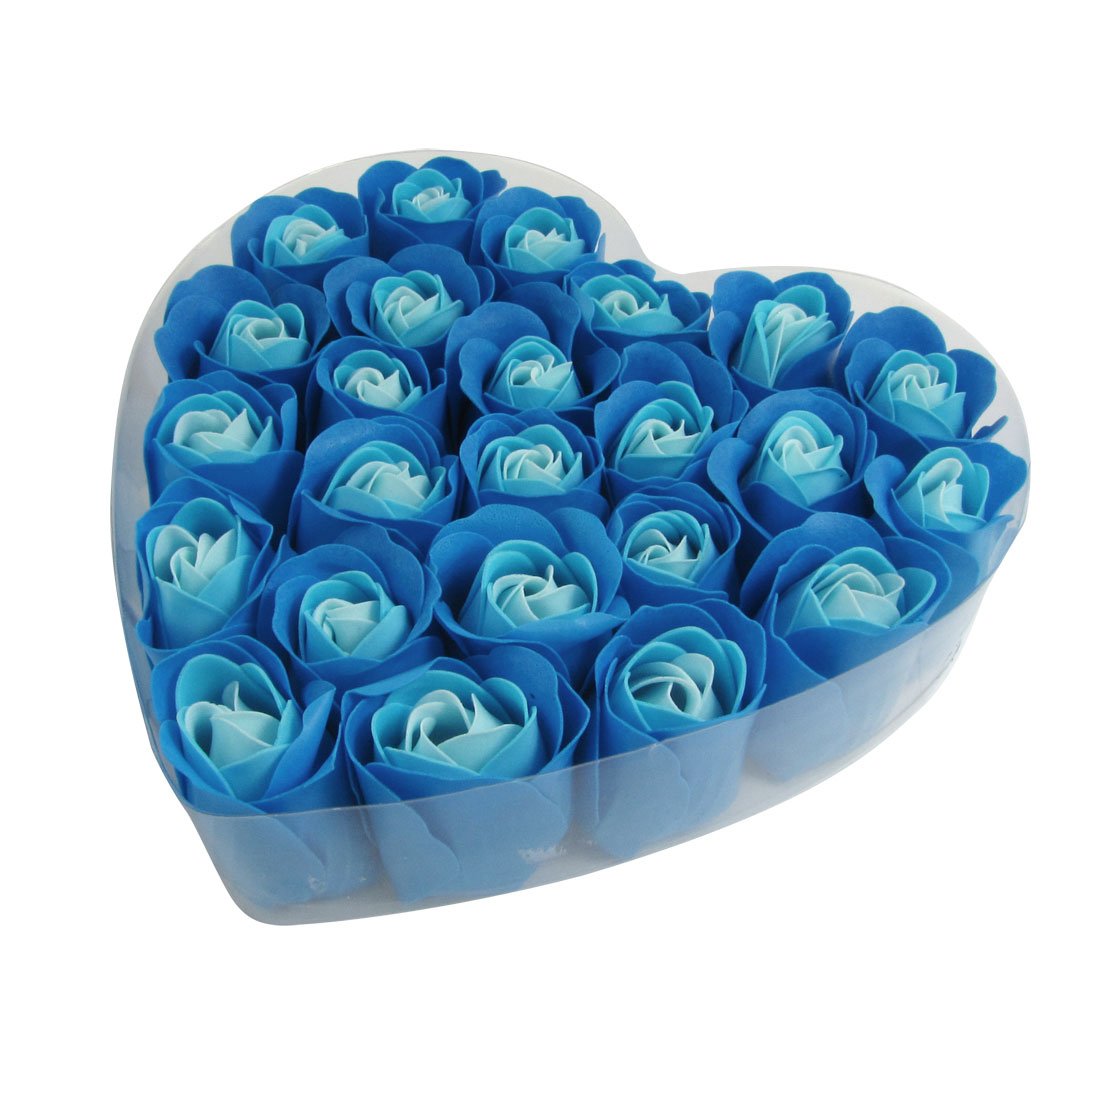 24 Pcs Blue Scented Bath Soap Rose Petal in Heart Box